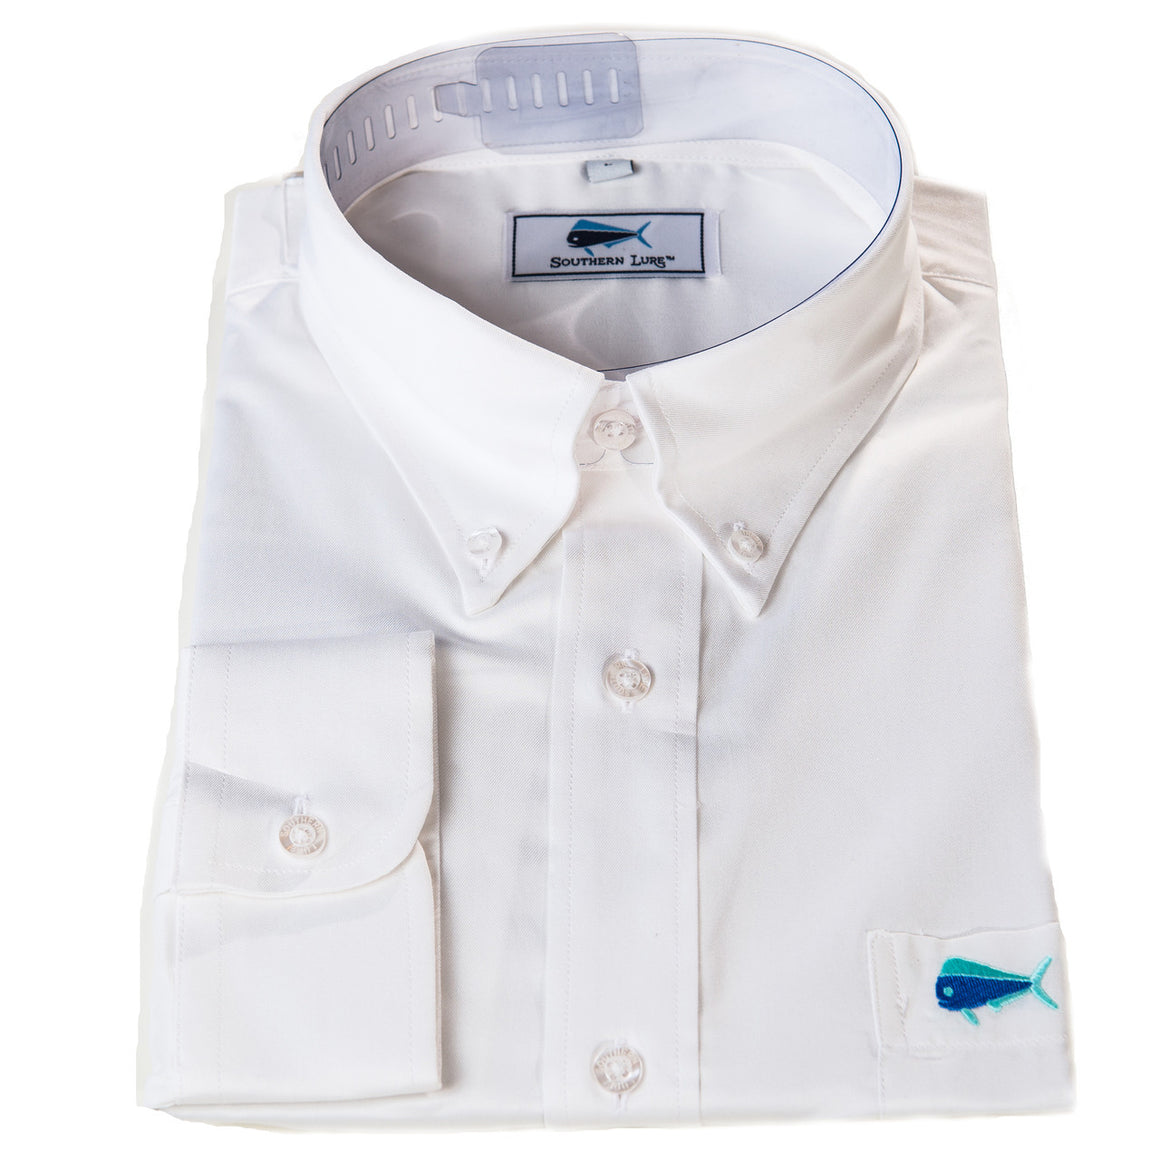 Southern Lure White Sport Shirt w/ Embroidered Logo